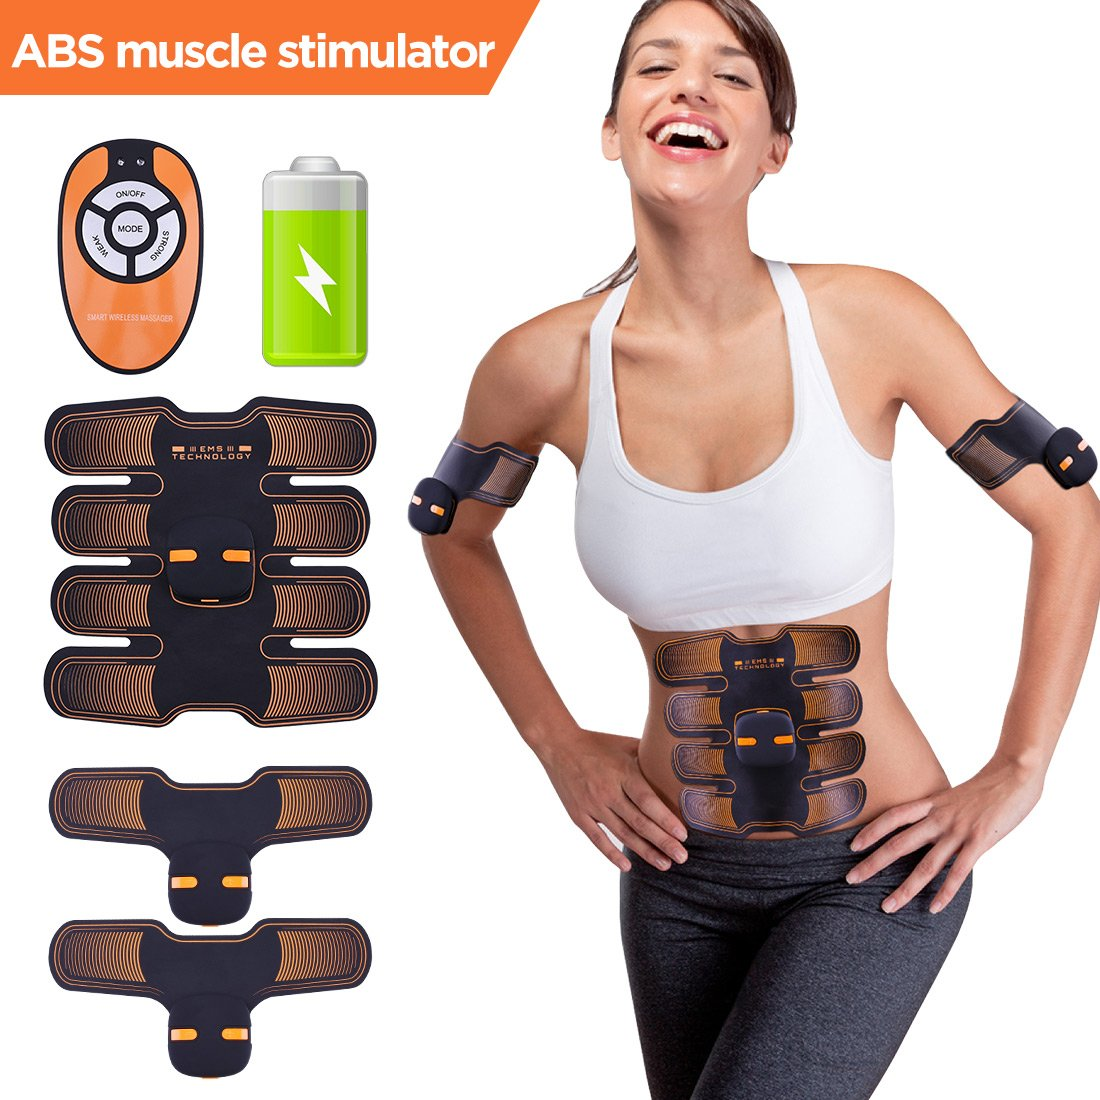 LunaLife Abs Stimulation Belt Magnetic Waves Portable Muscle Trainer Professional Muscle Toner Workouts Home Office Fitness Equipment for Man and Women